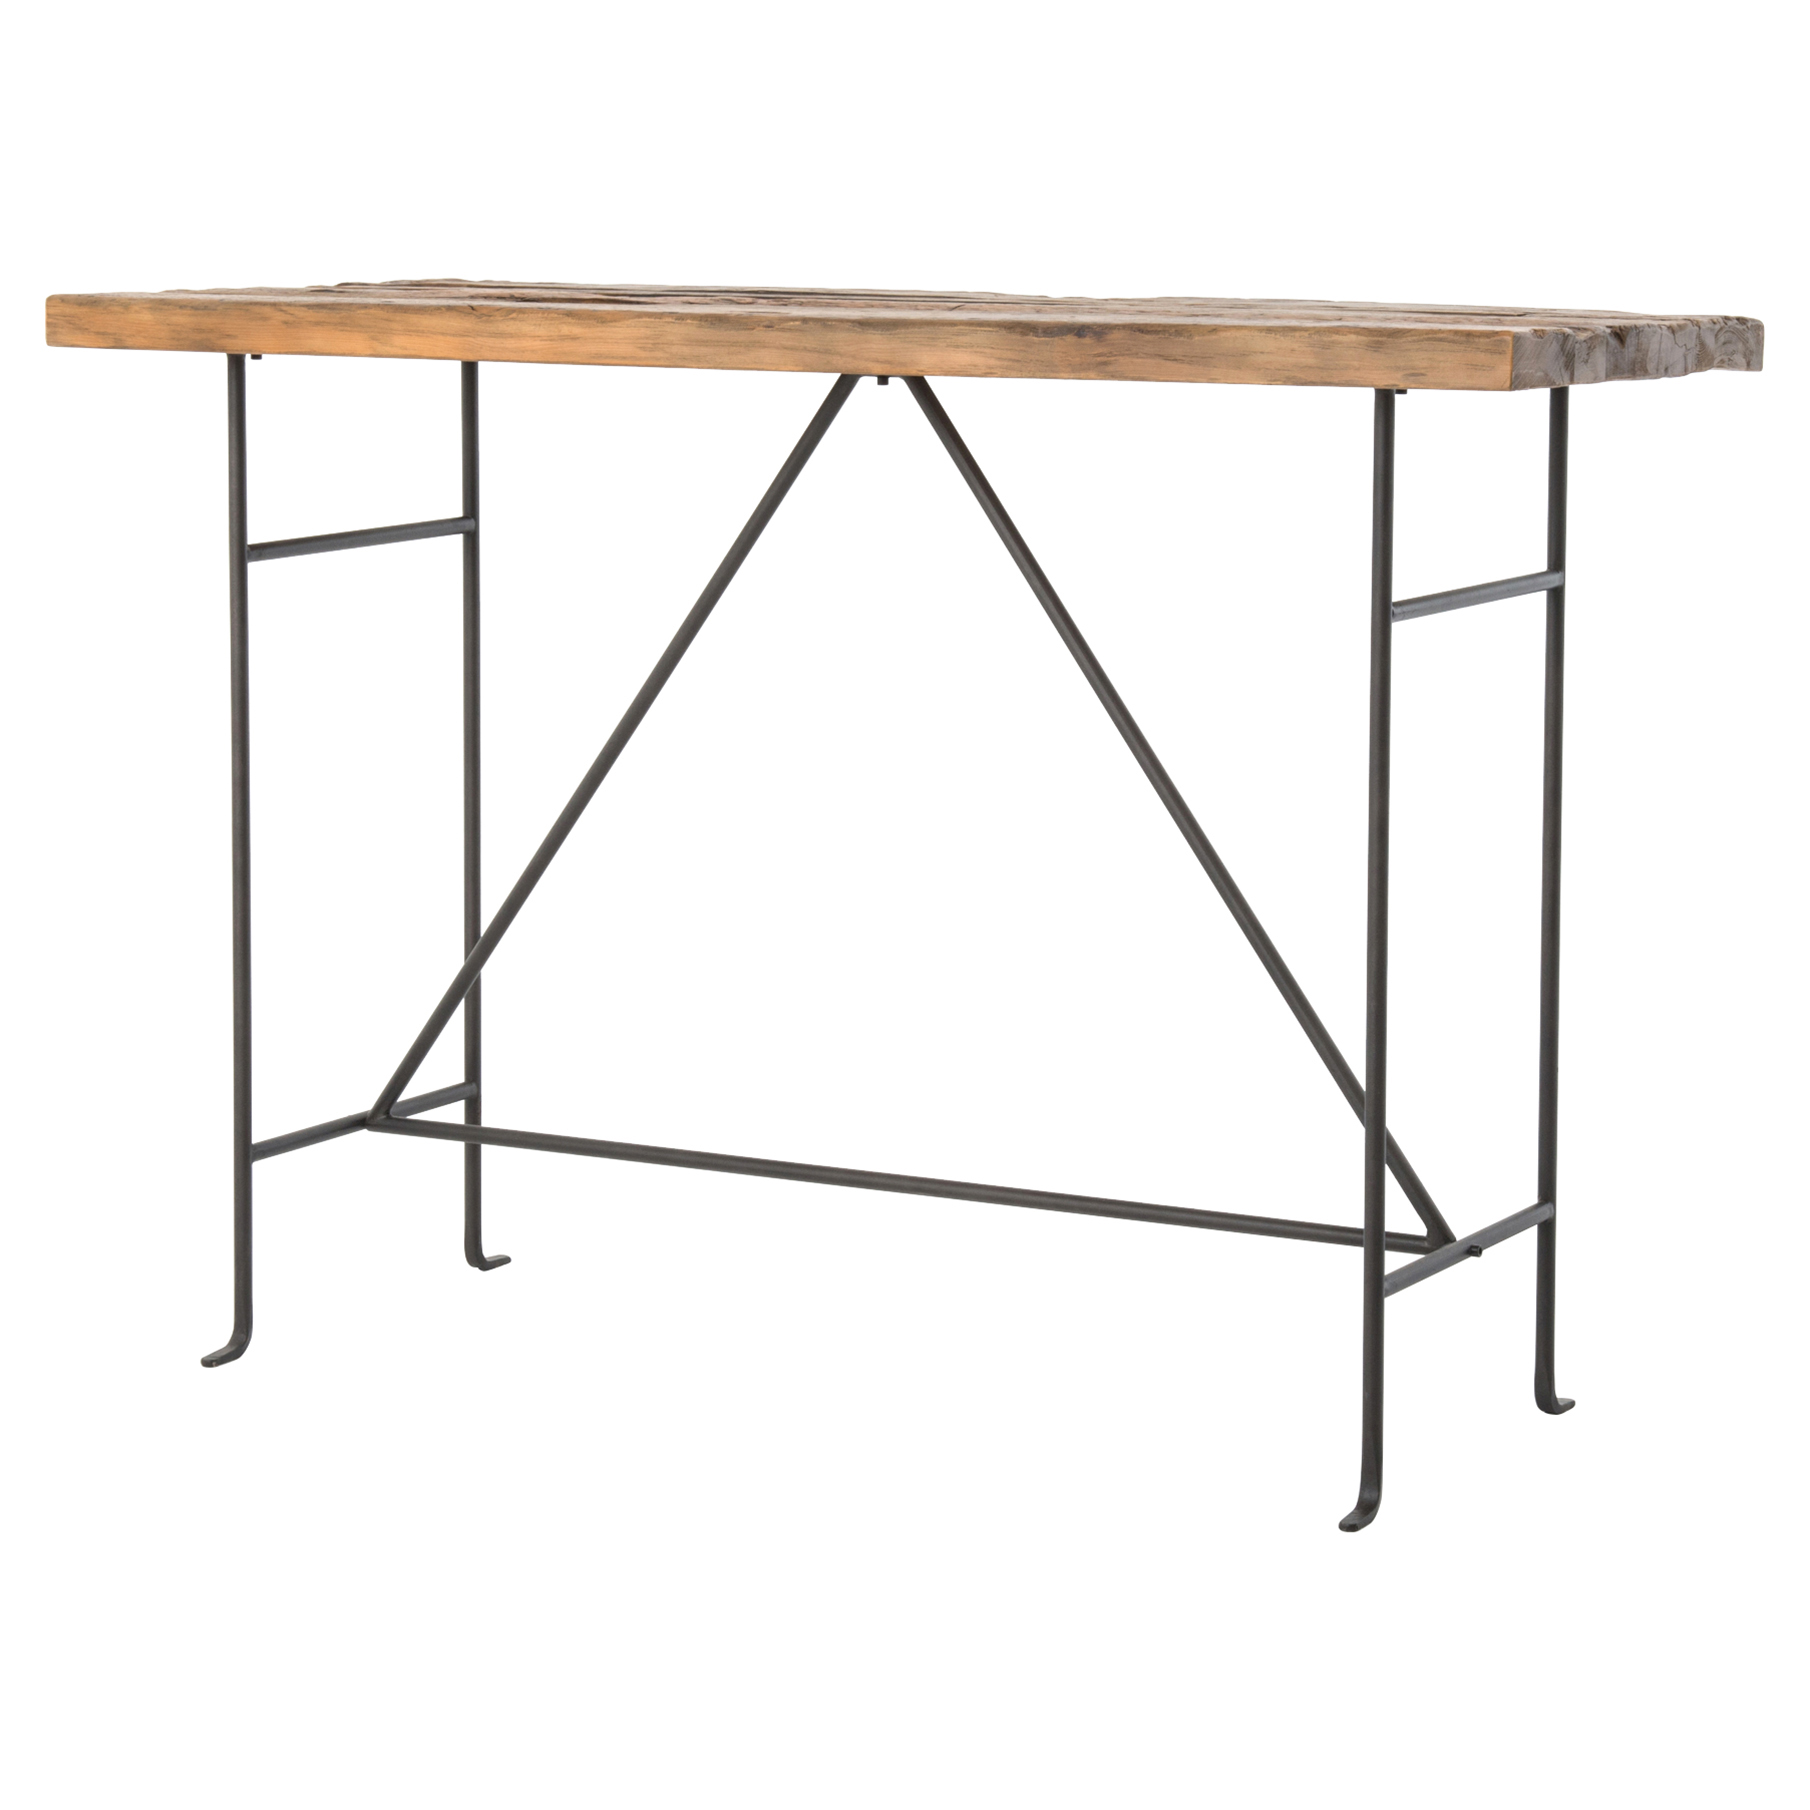 Jenkin Rustic Lodge Bleached Pine Slim Metal Bar Table